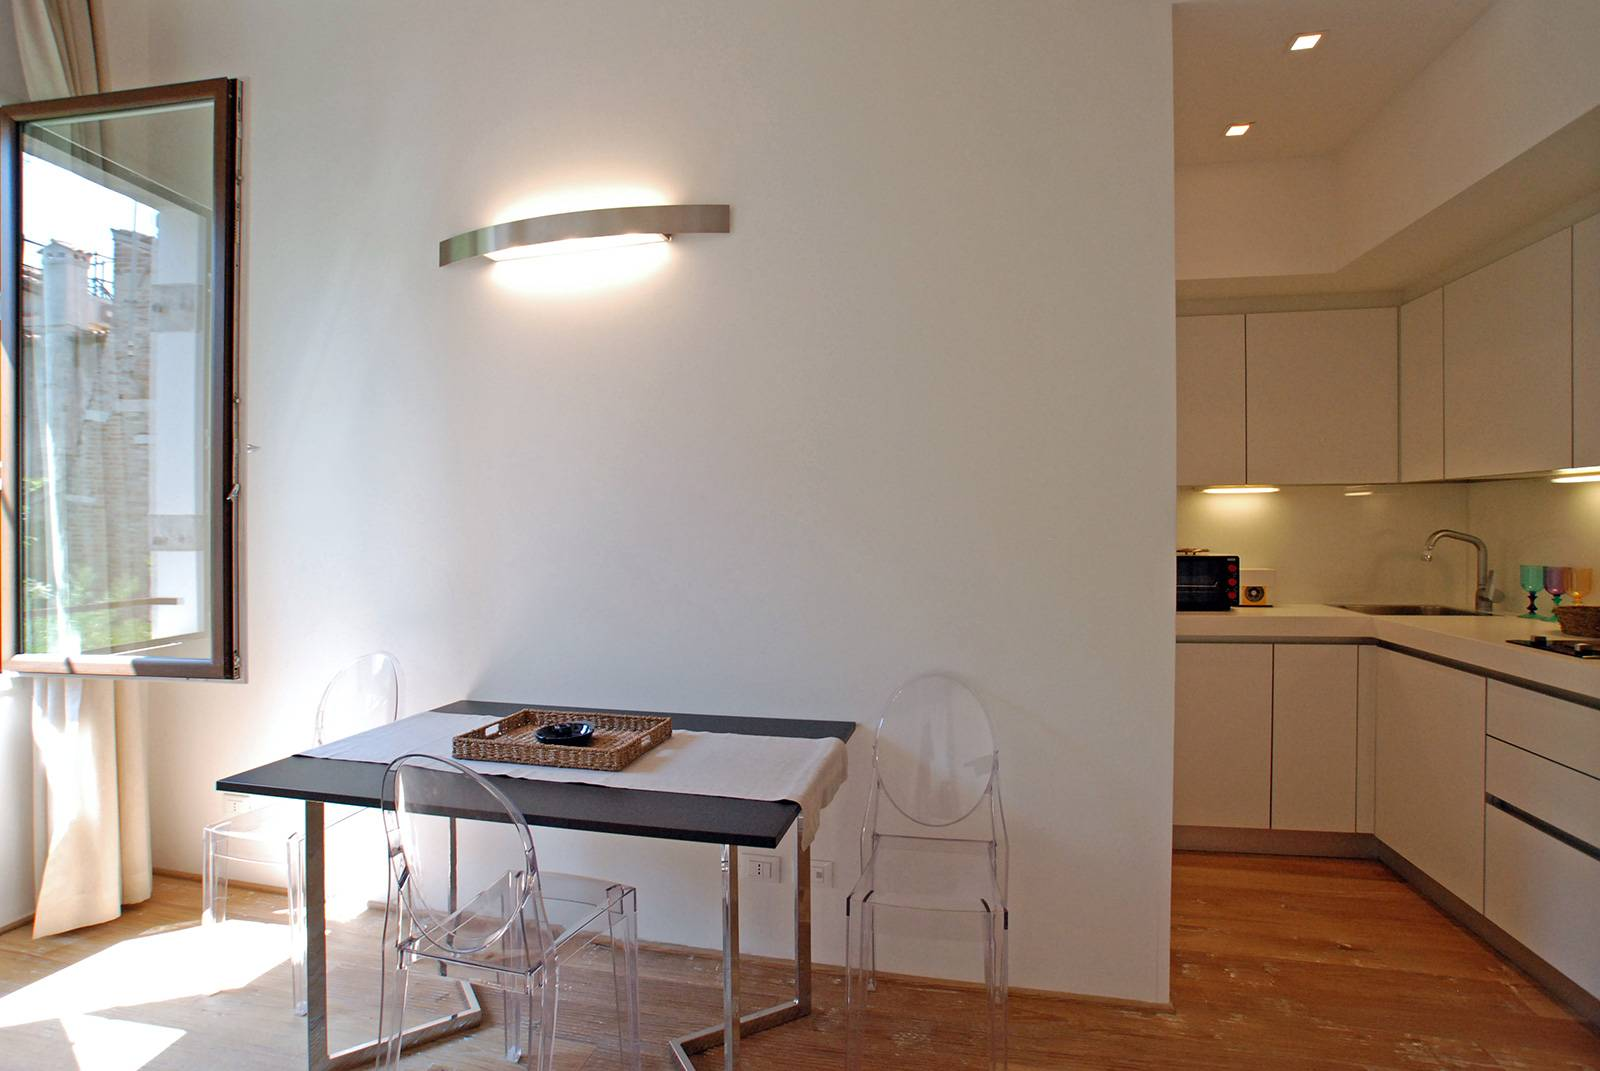 the living room has a table for 4 people and a functional kitchenette